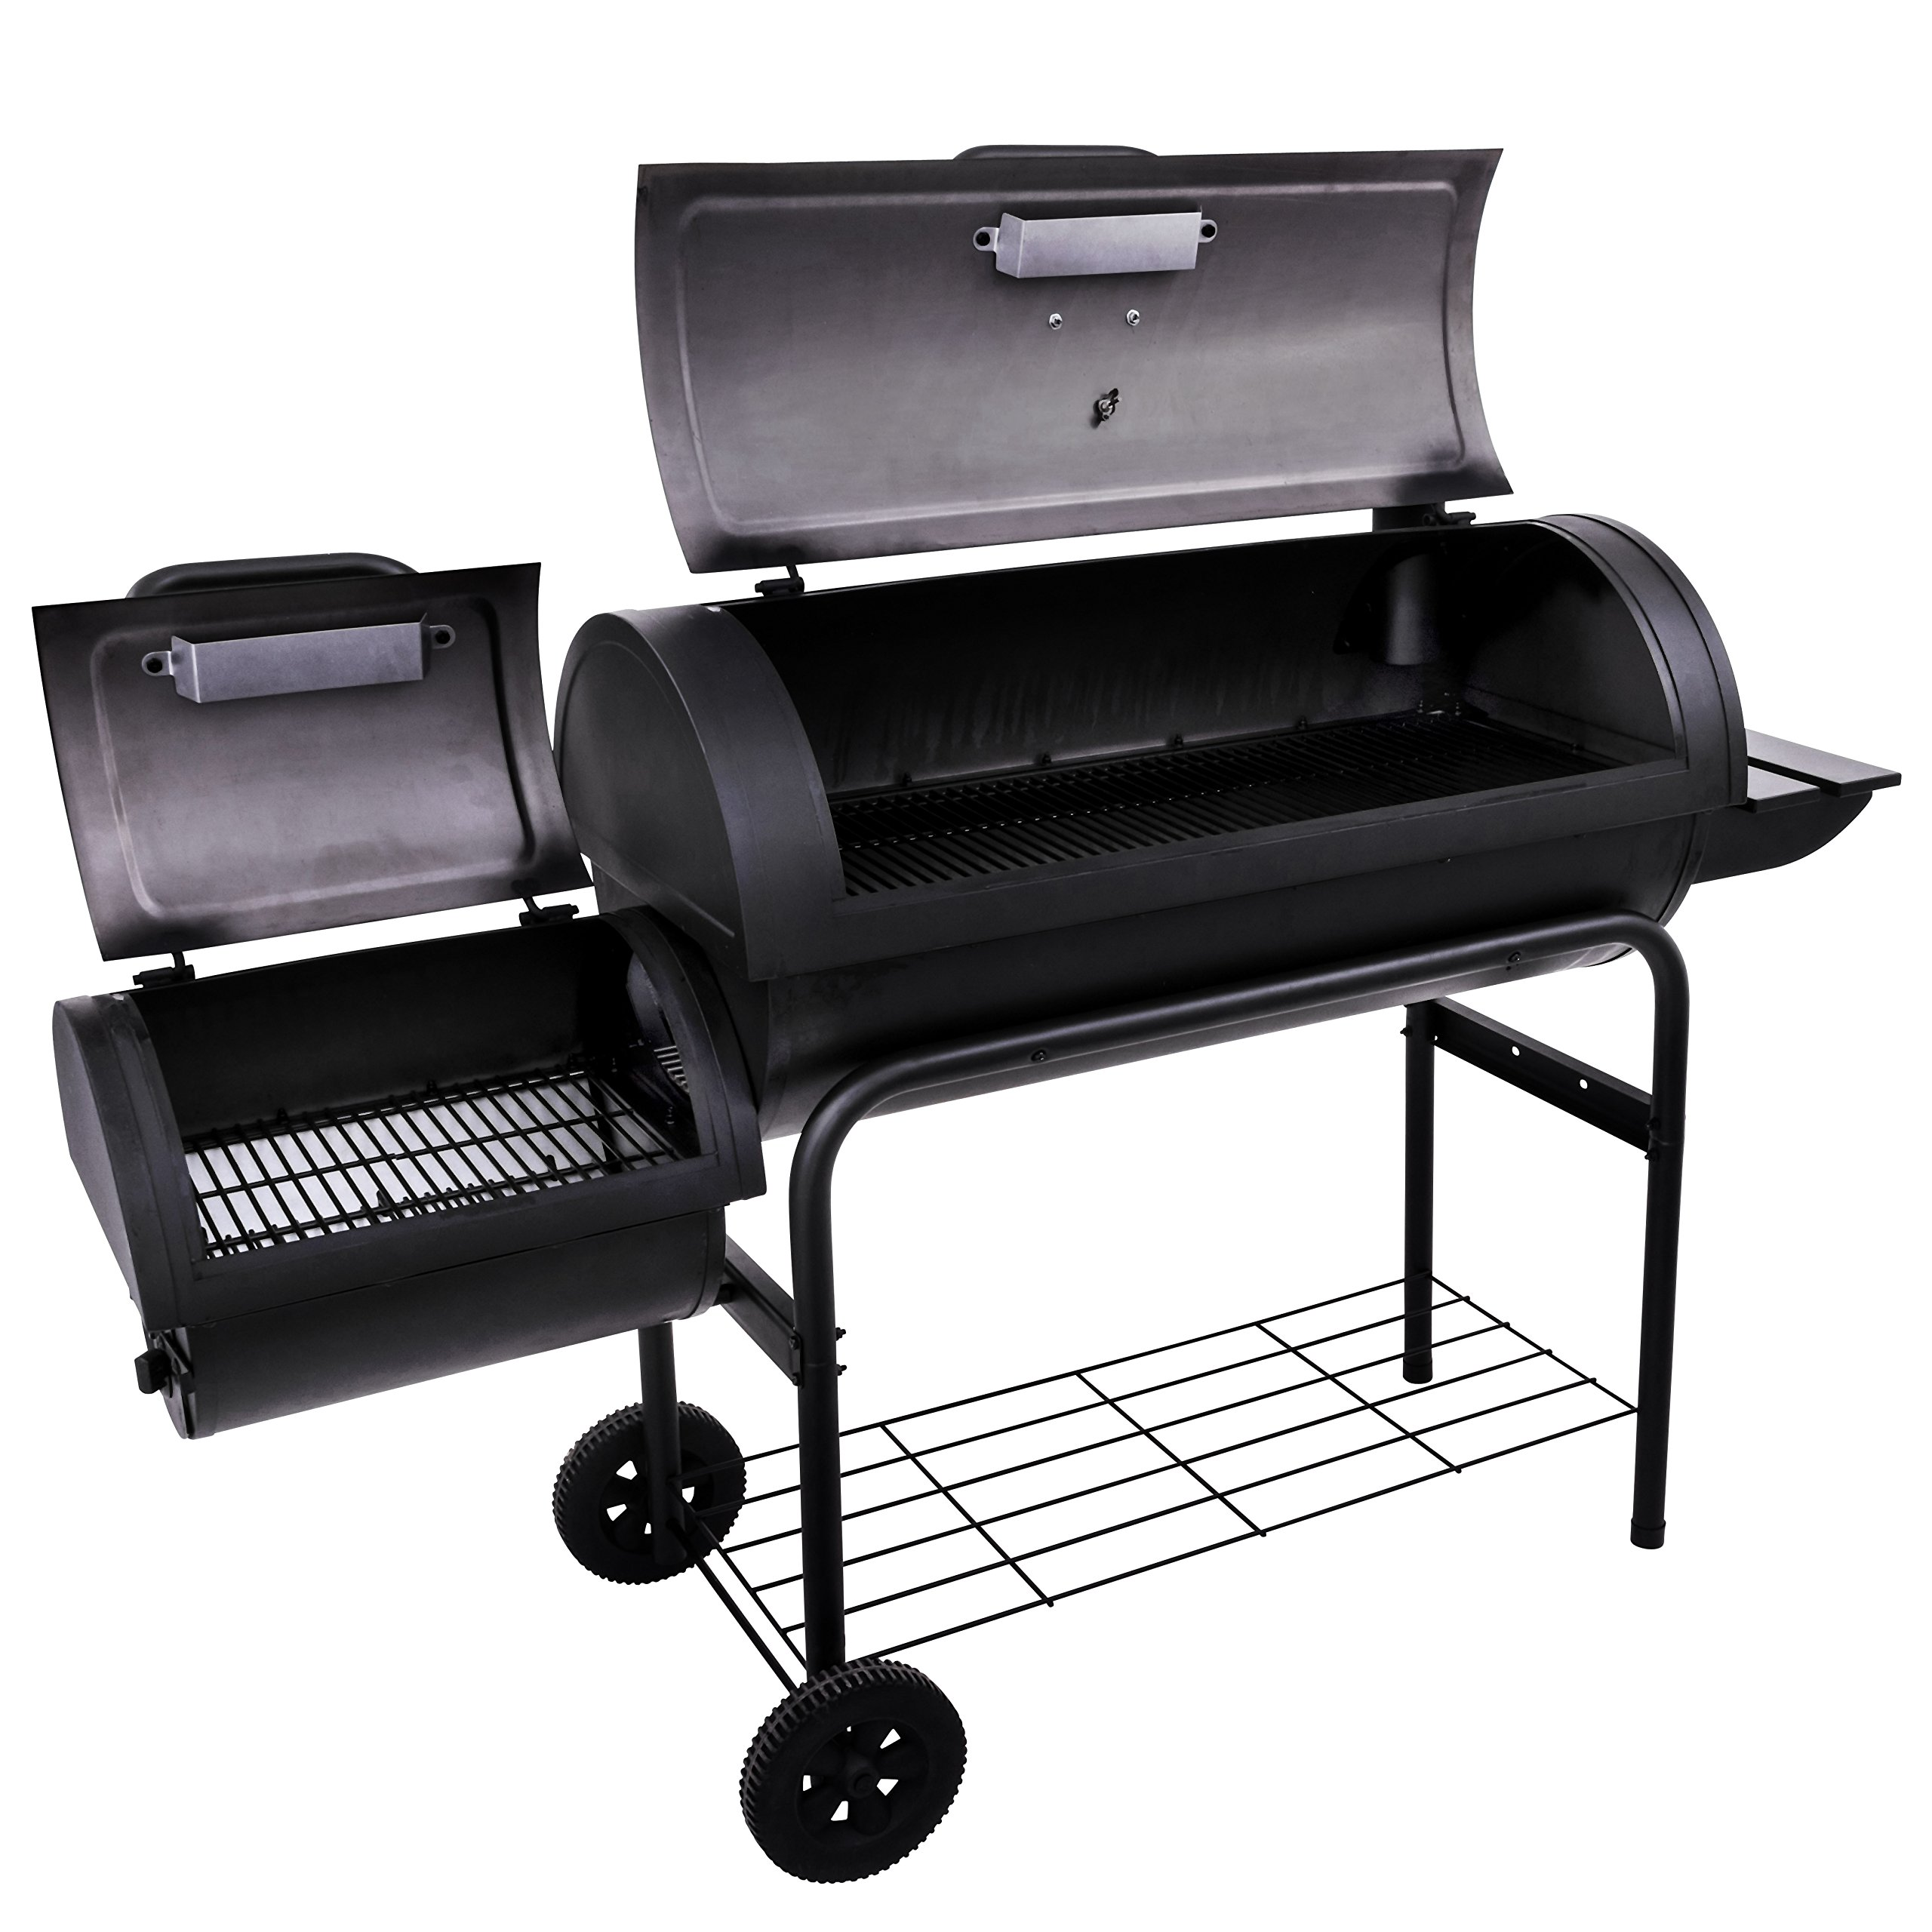 Char-Broil Offset Smoker, 40'' by Char-Broil (Image #5)